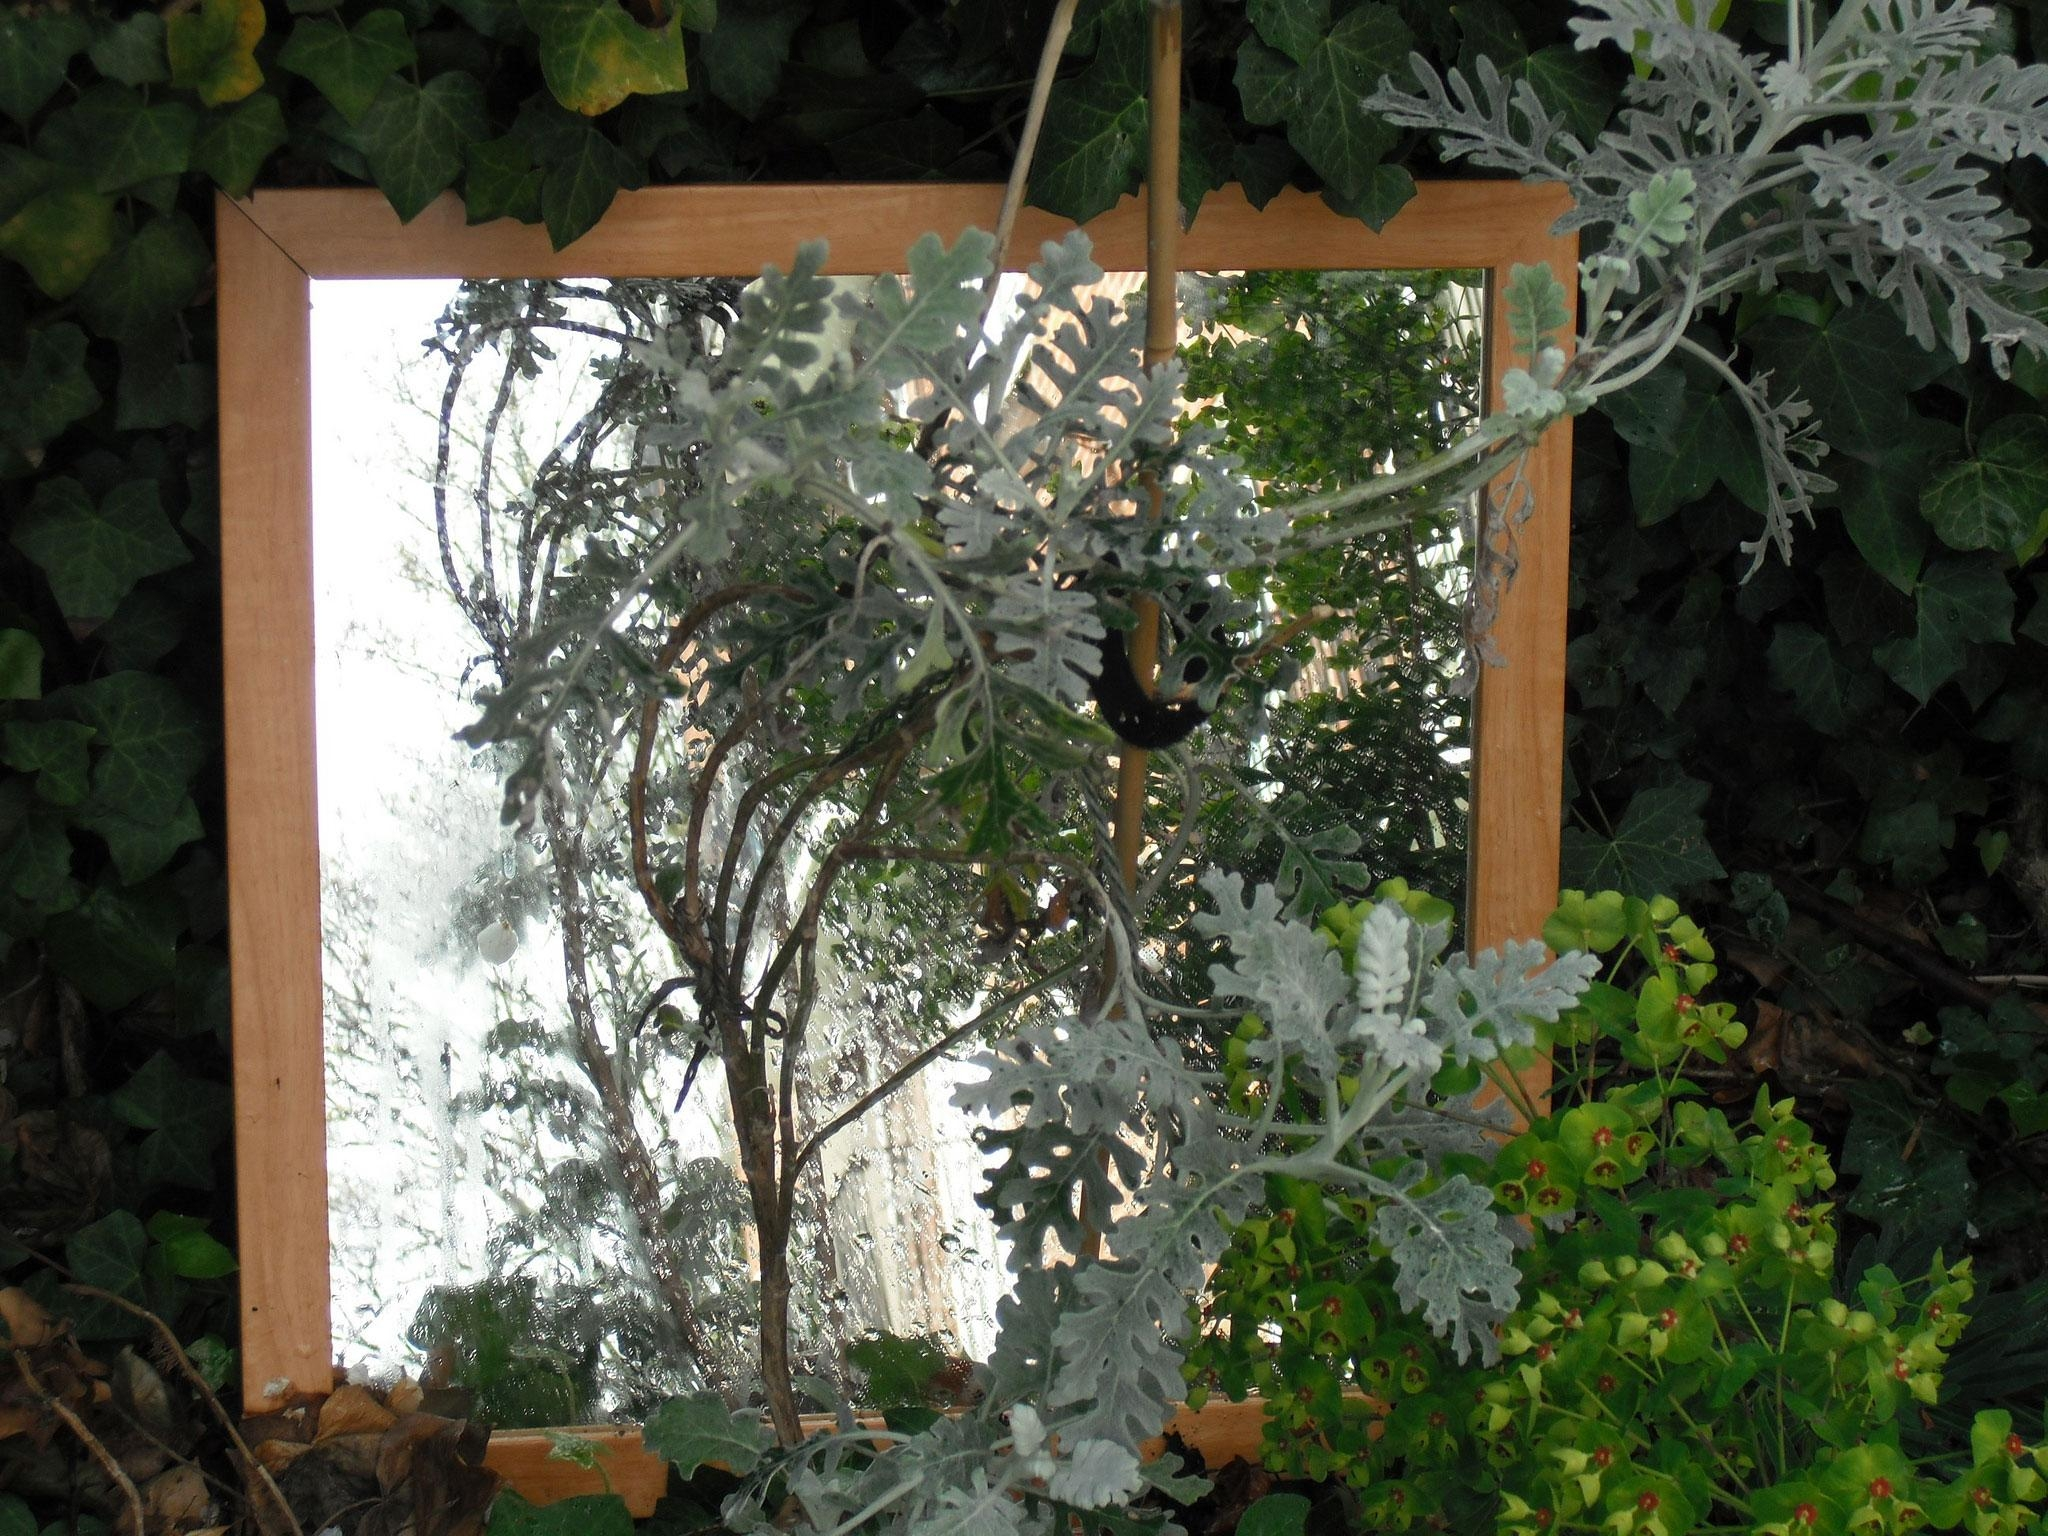 Mirrors For Garden Use – Information About Using Garden Mirrors With Regard To Large Garden Mirrors (View 6 of 20)